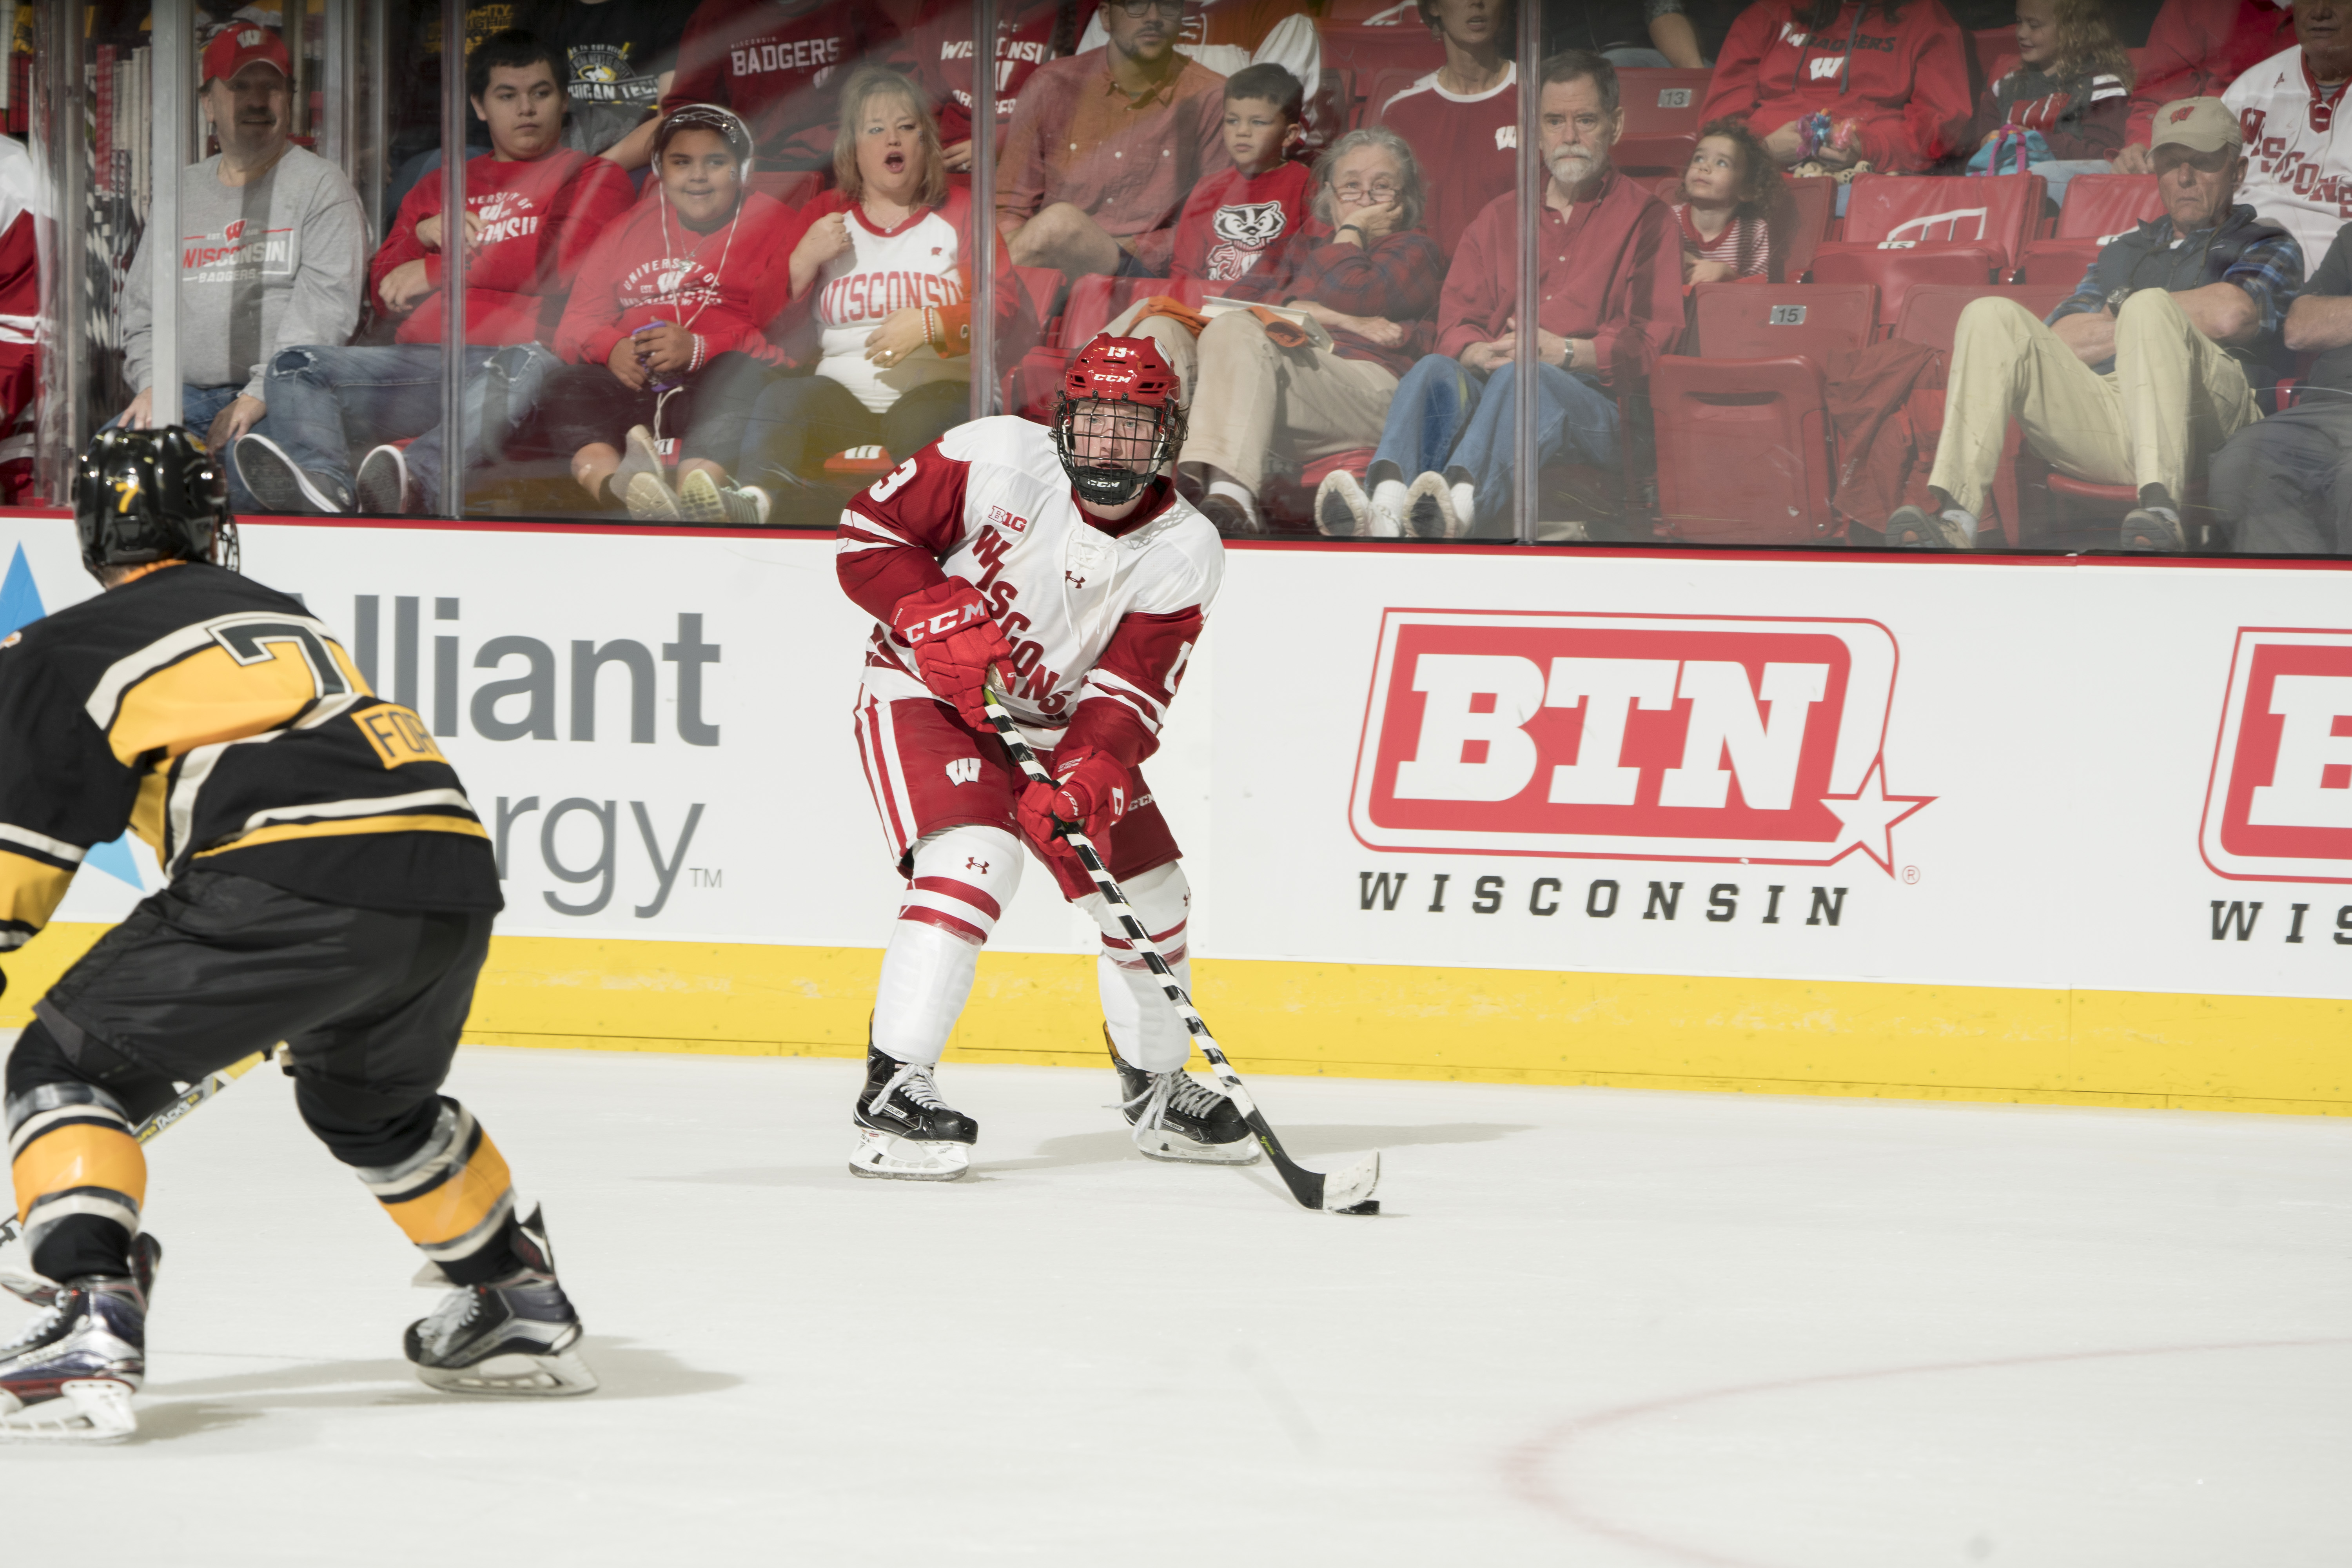 Ryan Wagner with the University of Wisconsin (photo courtesy of Greg Anderson)